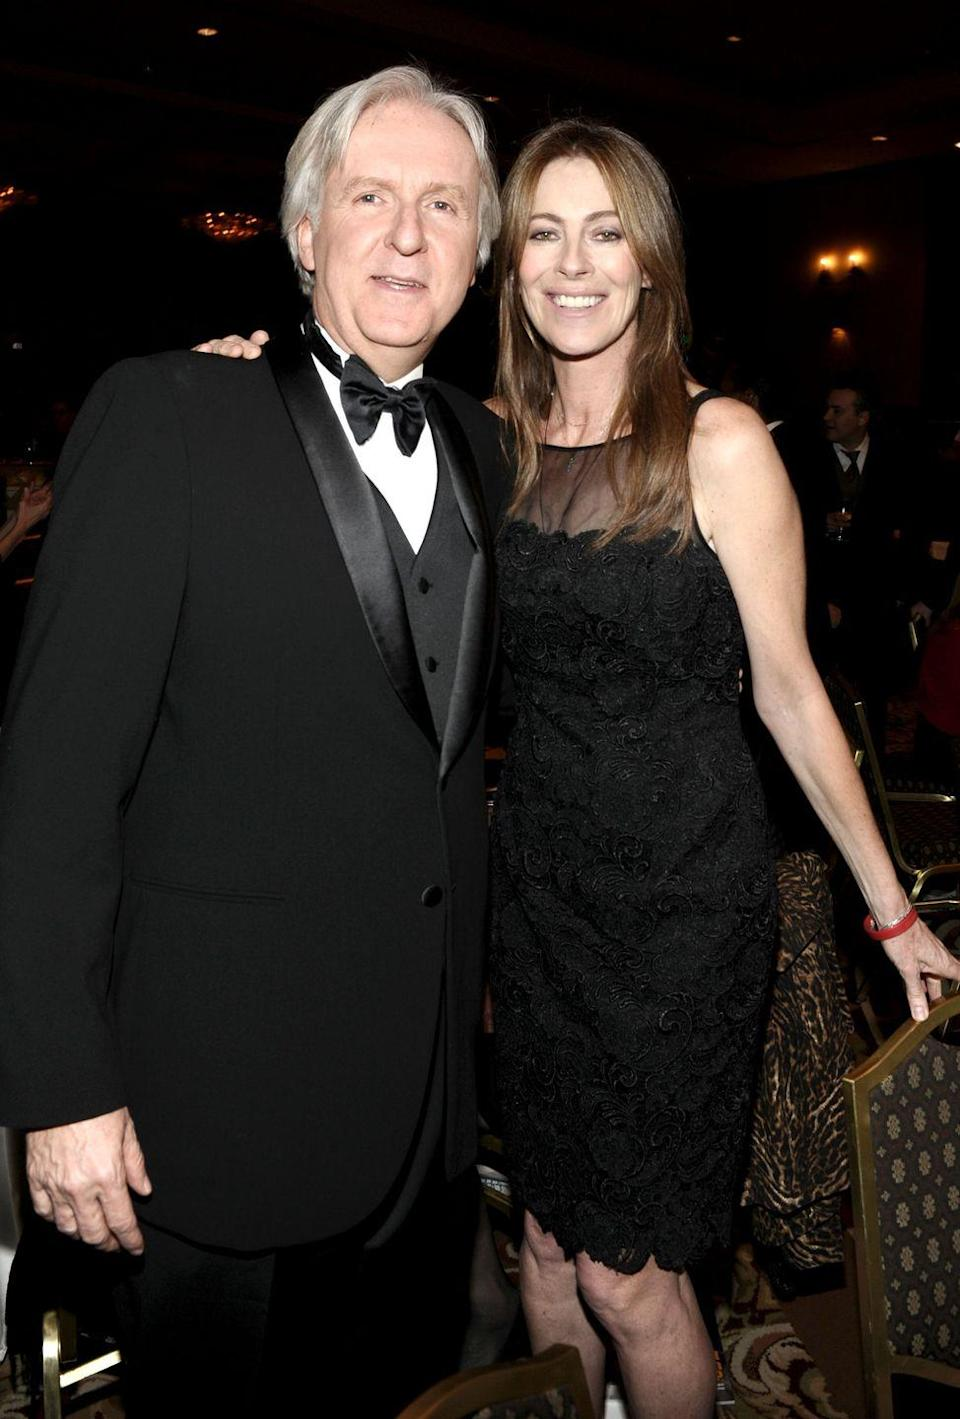 <p>Not only are James Cameron and Kathryn Bigelow Hollywood peers and Academy Award-winning directors, they're also exes. The couple was married for two years following their 1989 wedding. Years later, they sat only a few feet apart when their films competed for Best Picture at the Oscars in 2010. </p>